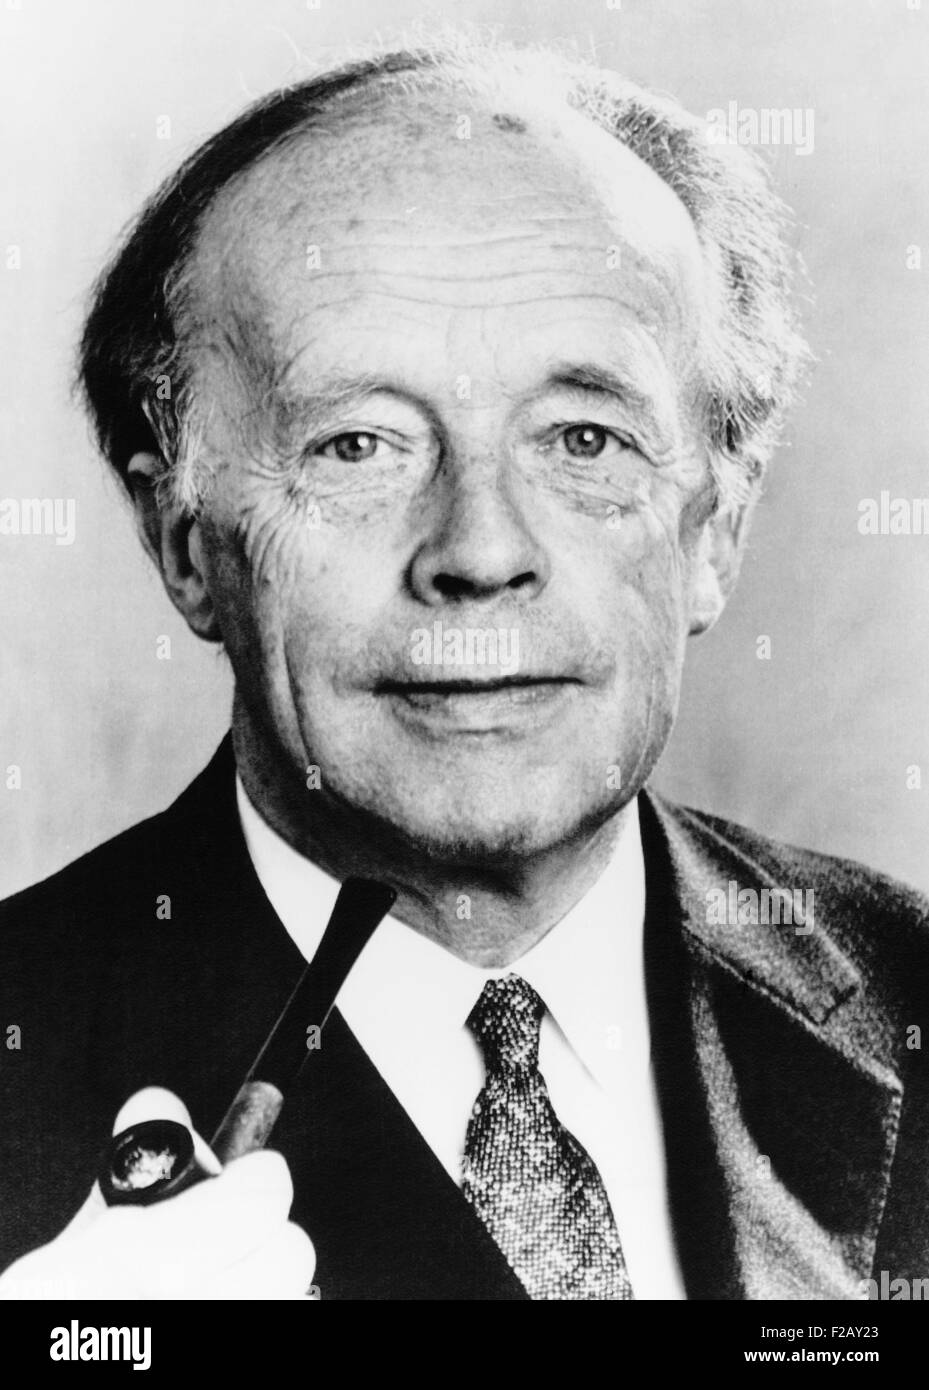 Erskine Childers, the first Protestant President of the Roman Catholic  Irish Republic. May 1973. In the 1950s and 1960s he held